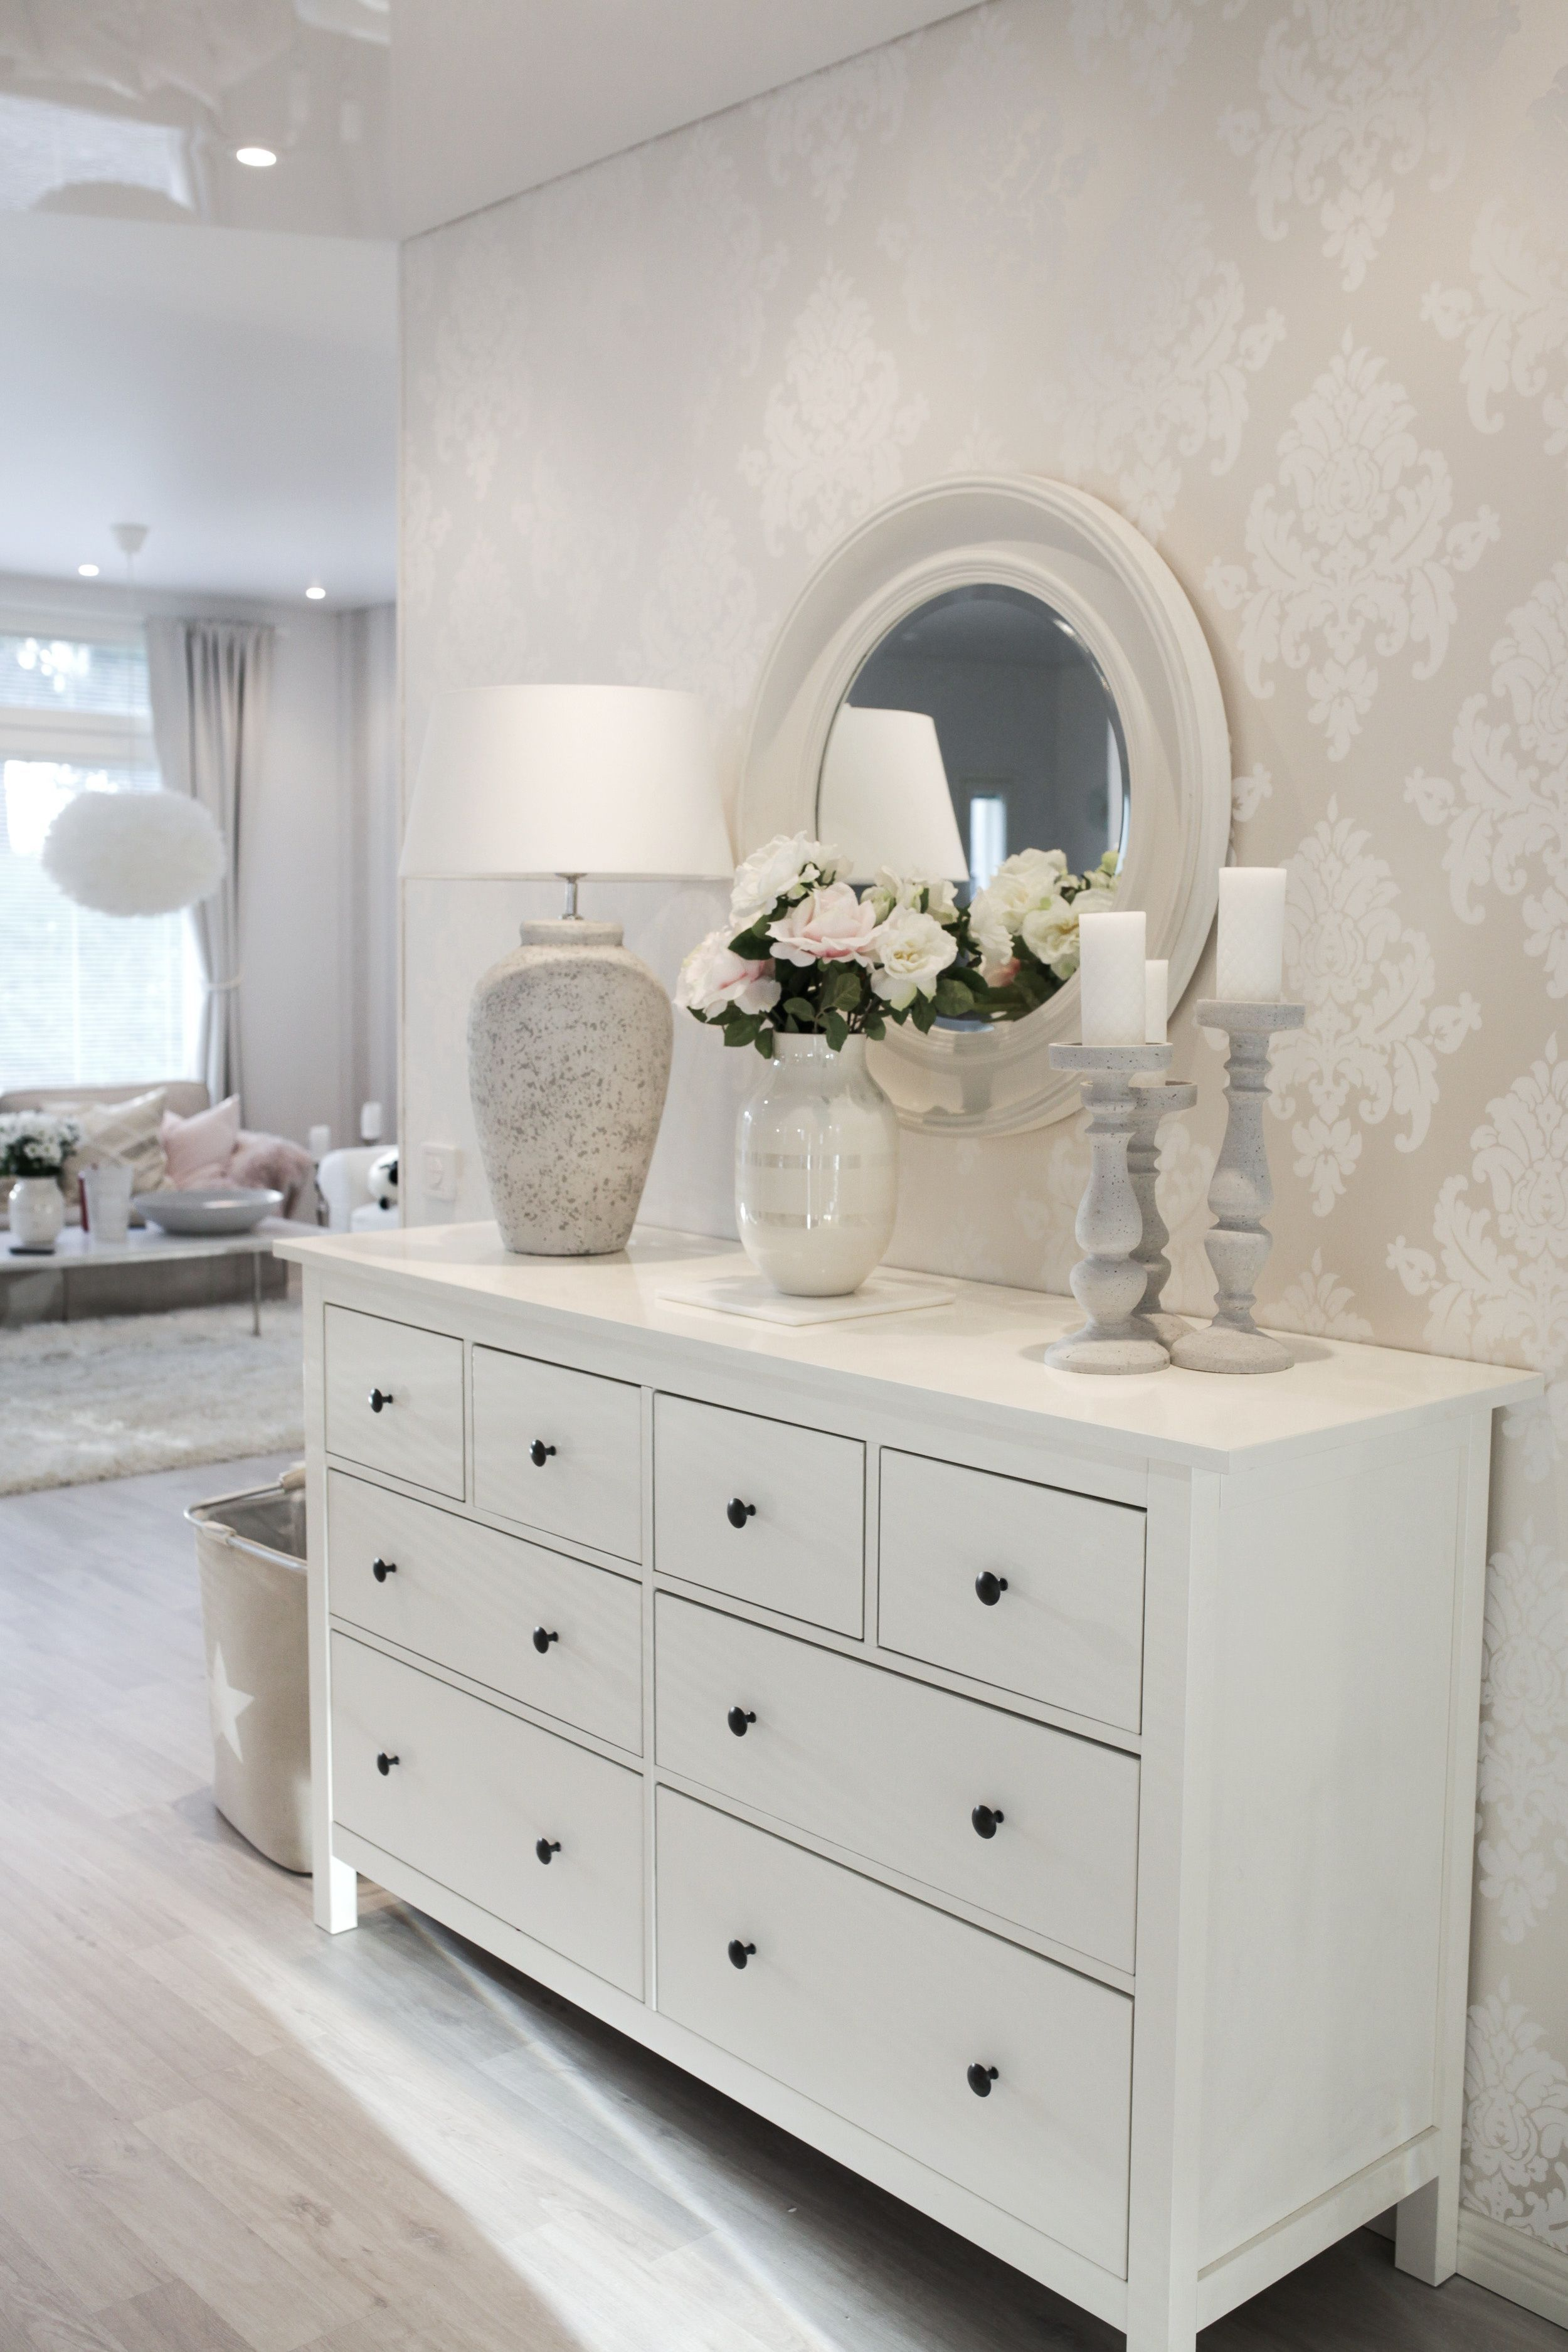 Schlafzimmer Hemnes This Hallway Looks Great Love The Use Of An Ikea Hemnes Dresser